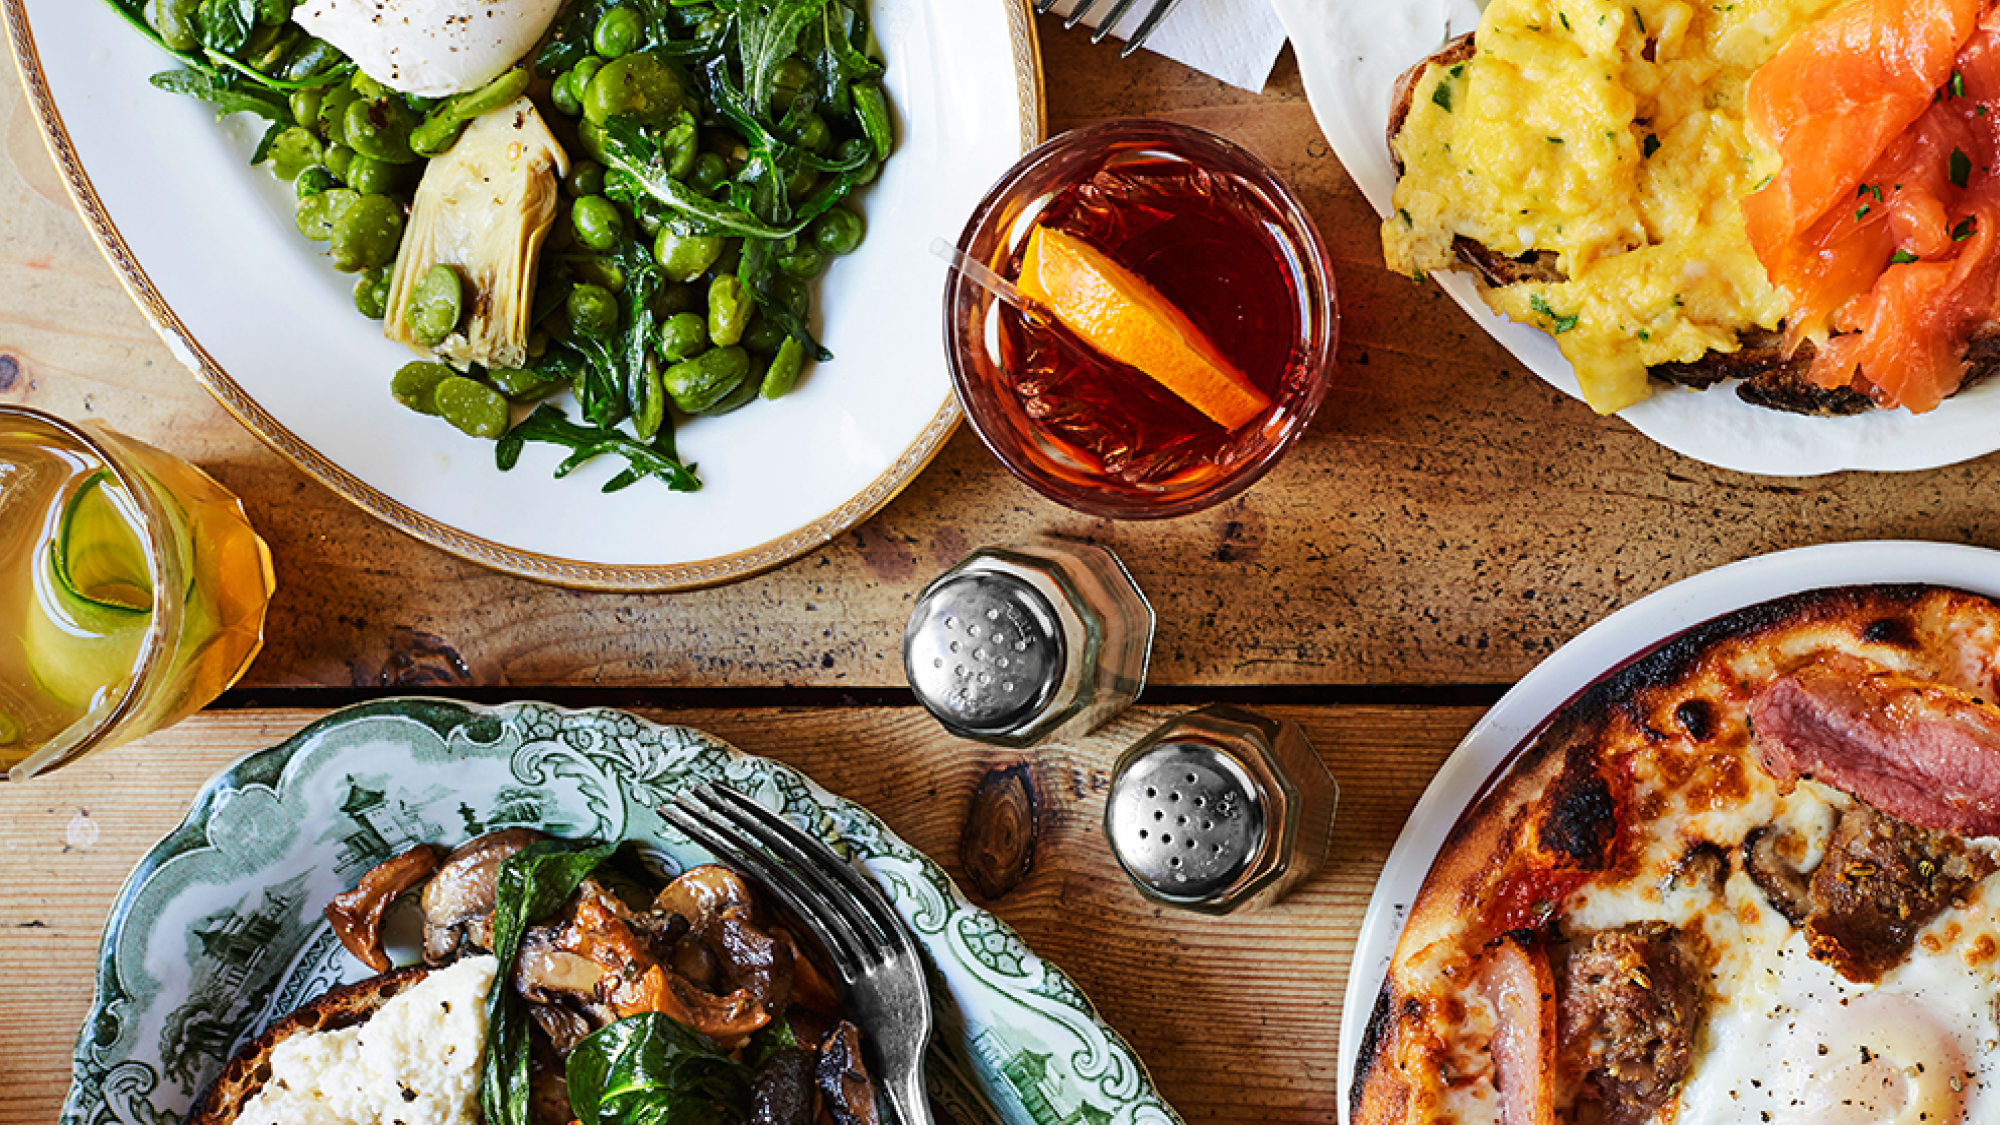 50 seriously cool places to have brunch in London